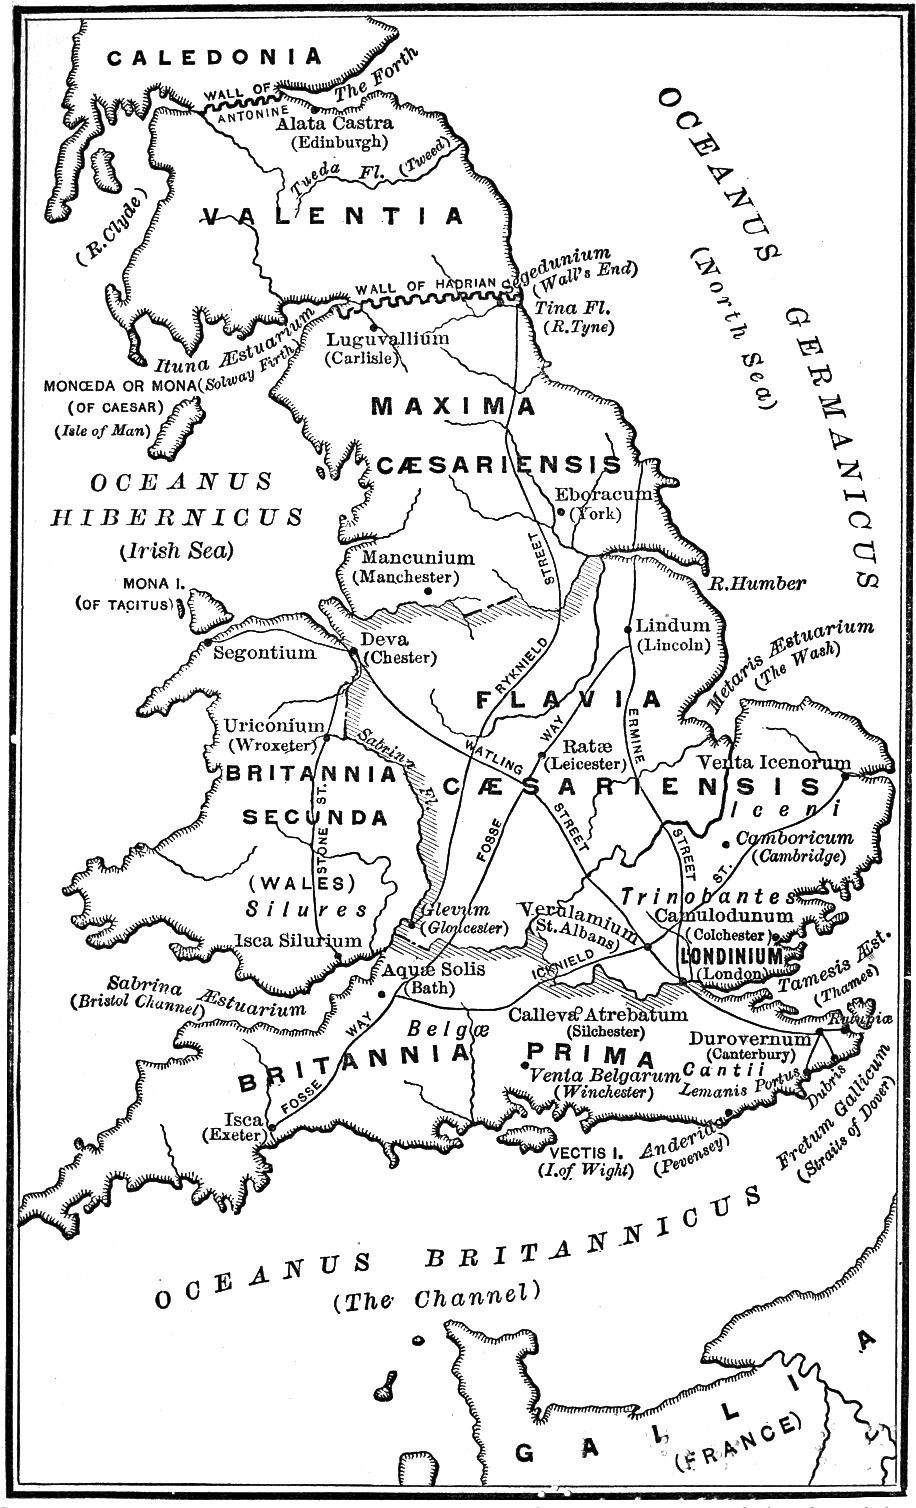 The Leading Facts Of English History, by D. H. Montgomery